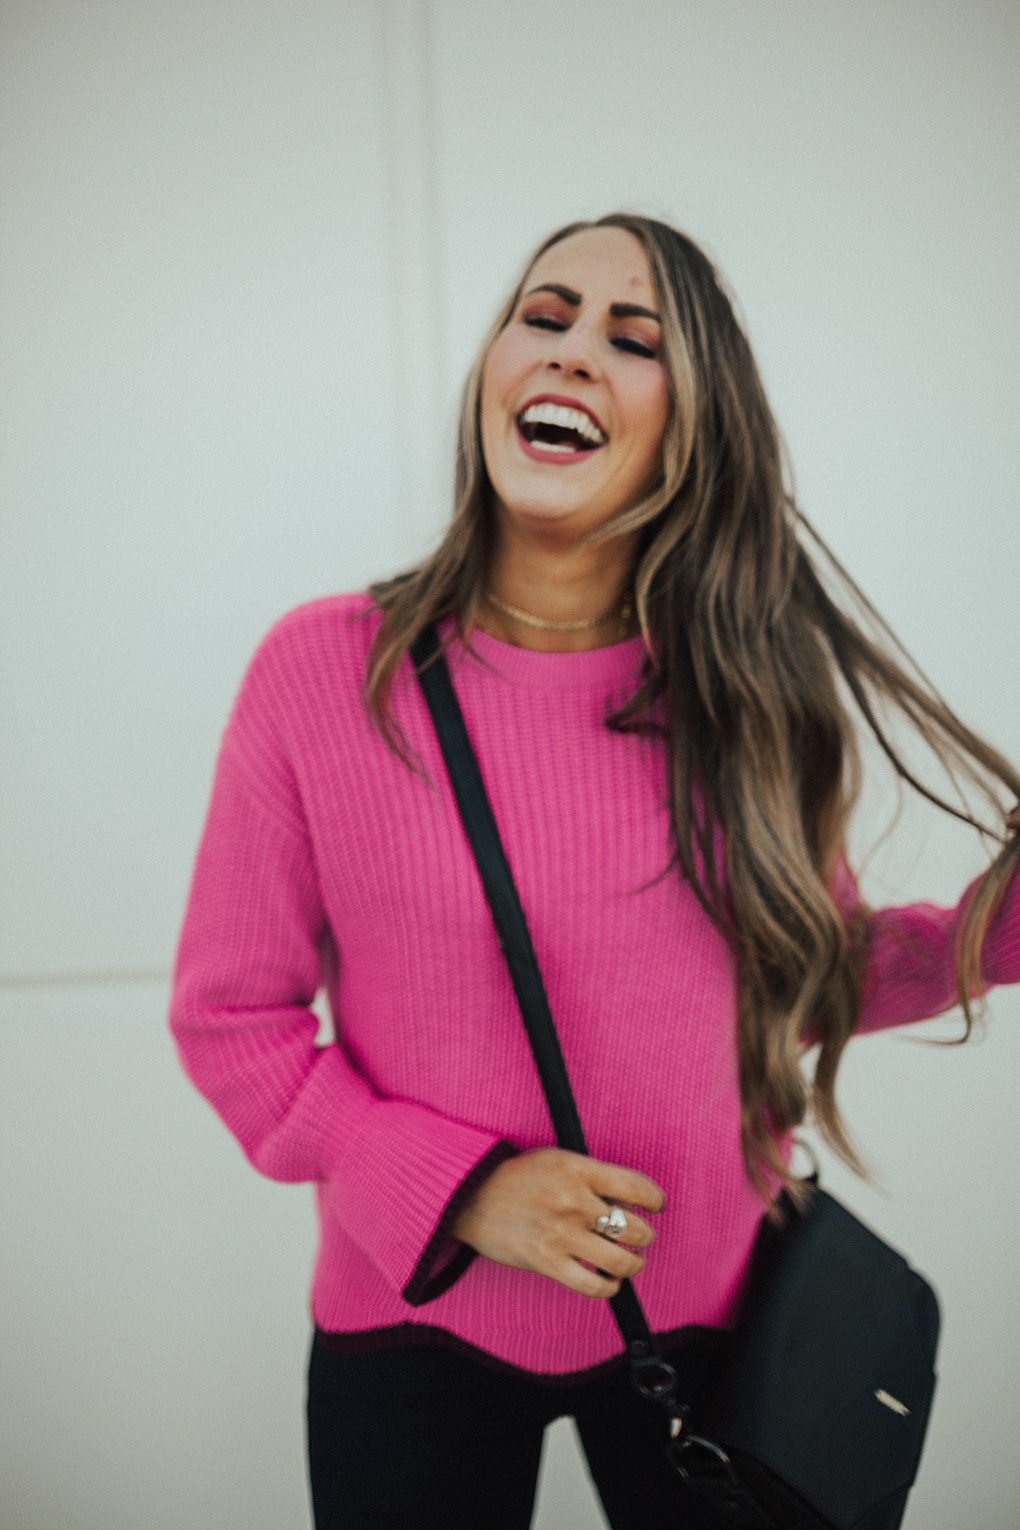 Wearing Colorful Sweaters Through Fall & Winter by Utah fashion blogger Dani Marie